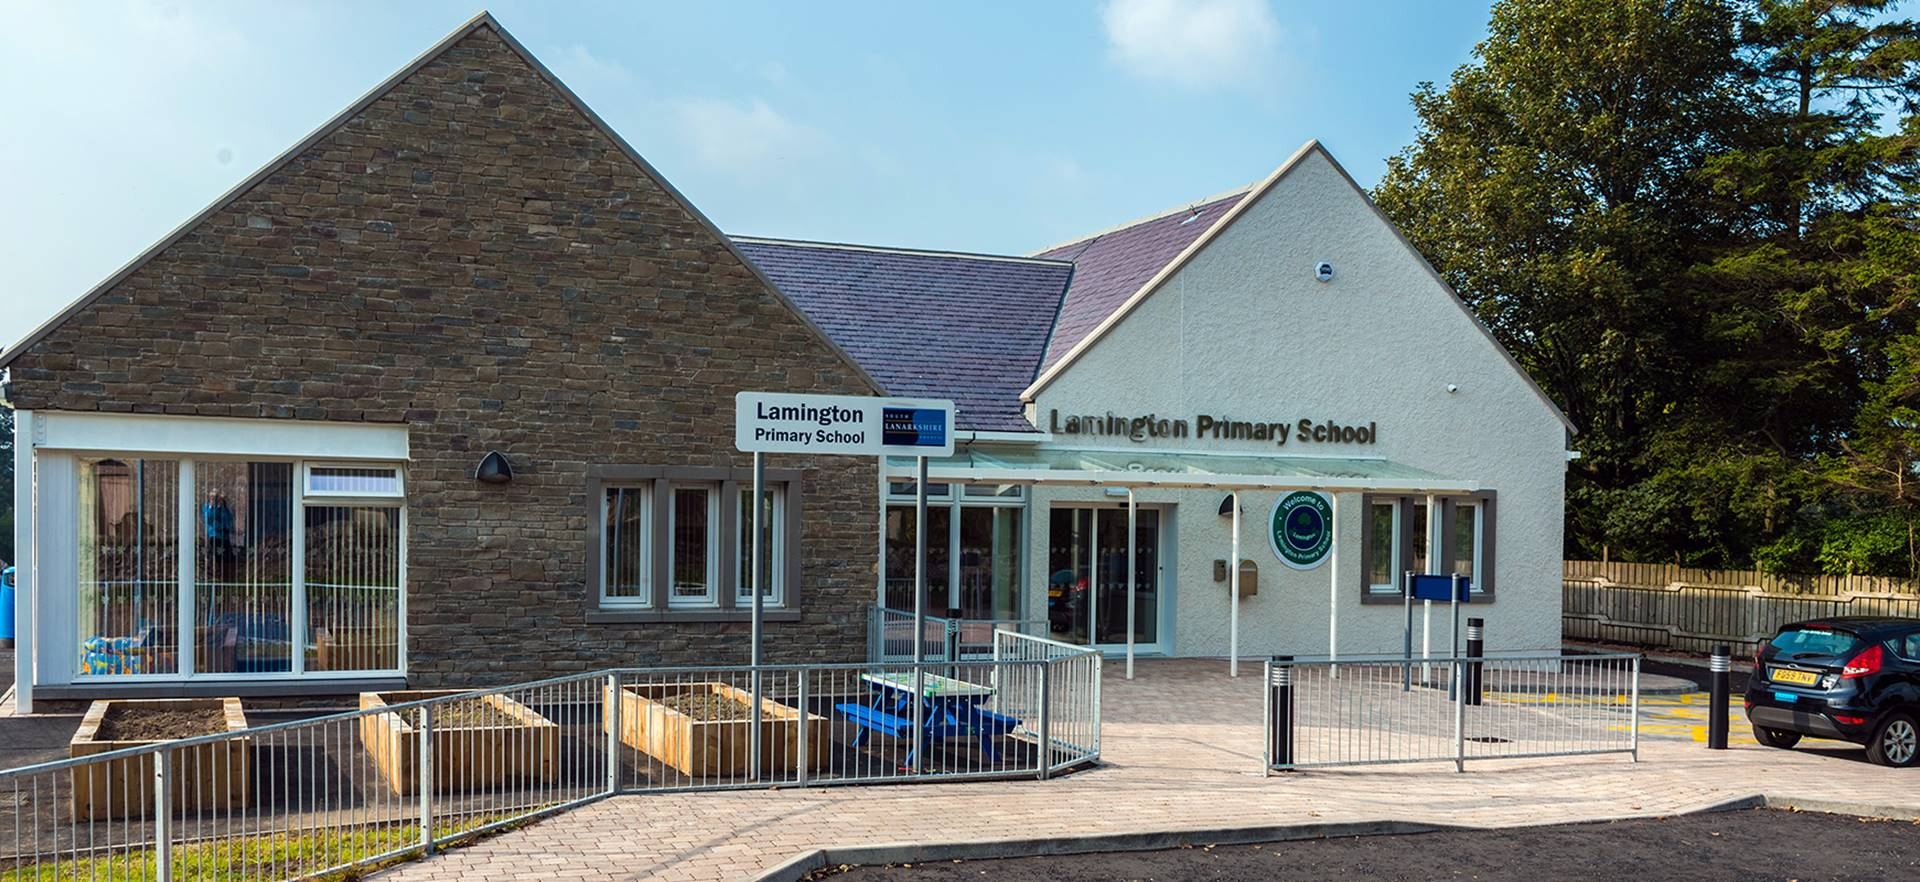 Lamington Primary School, South Lanarkshire